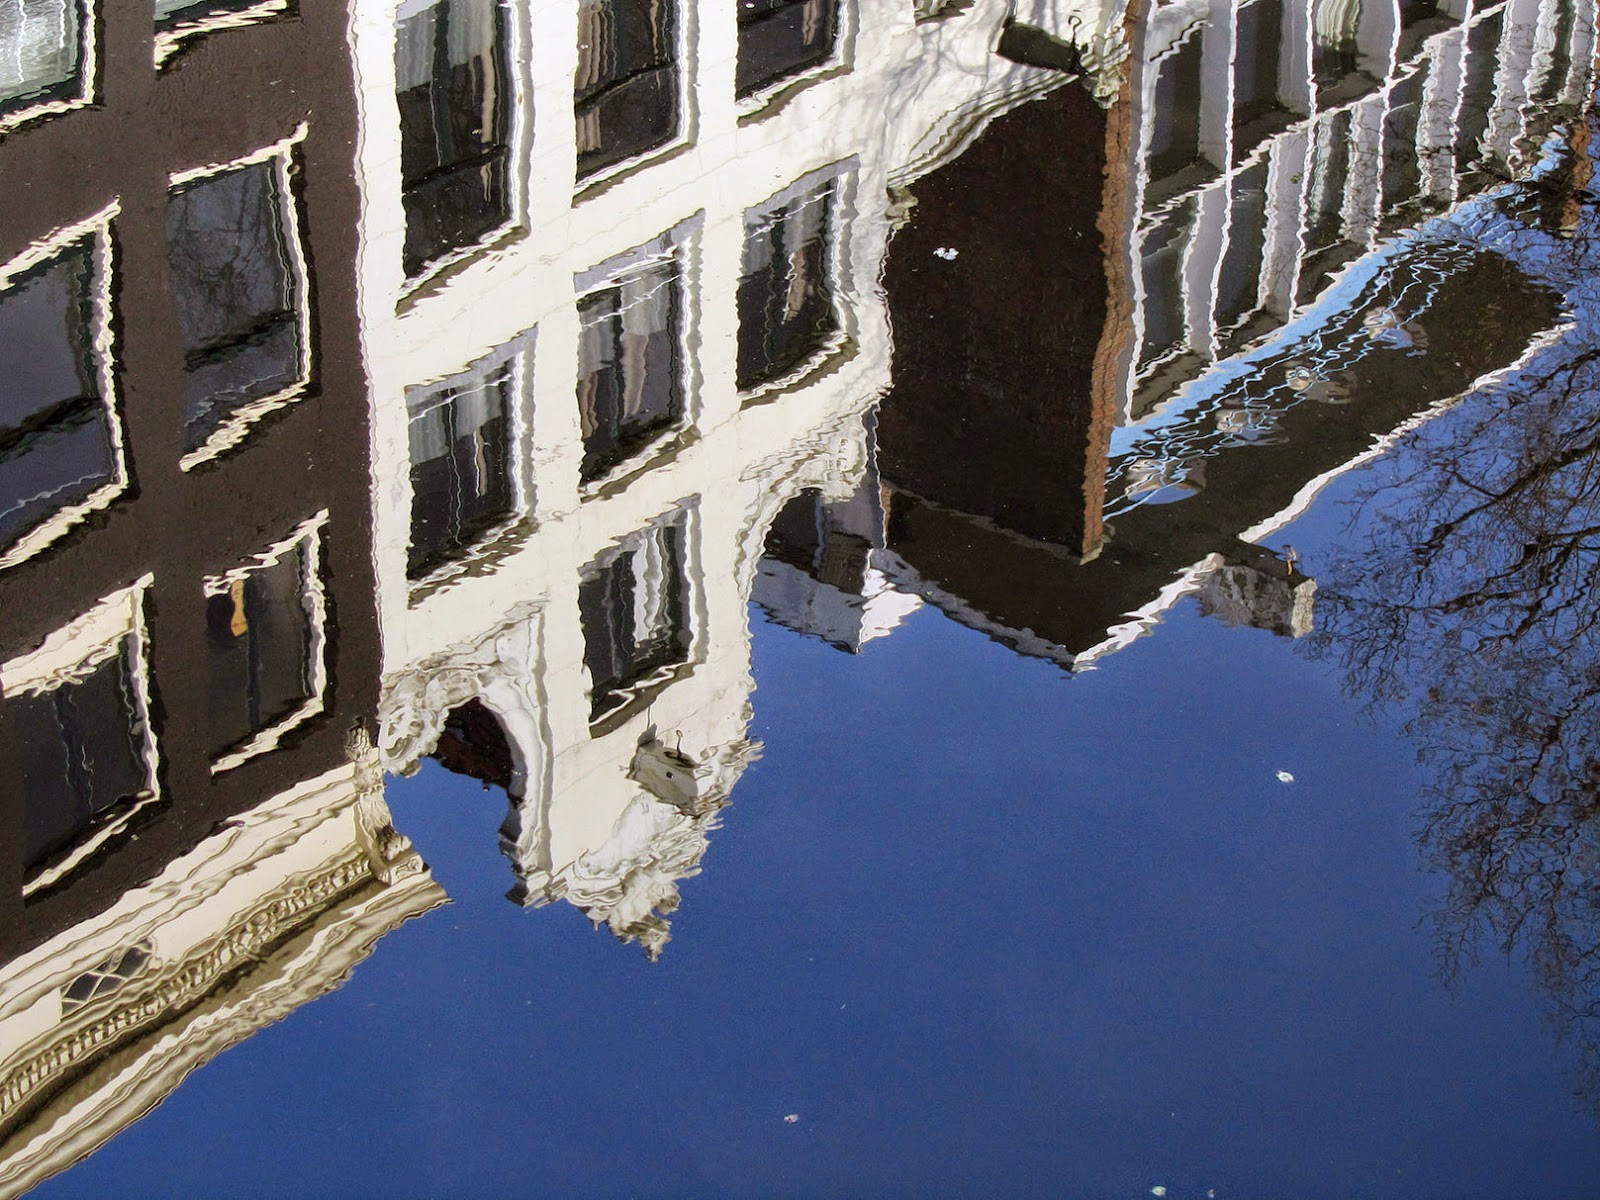 reflection of an Amsterdam canal